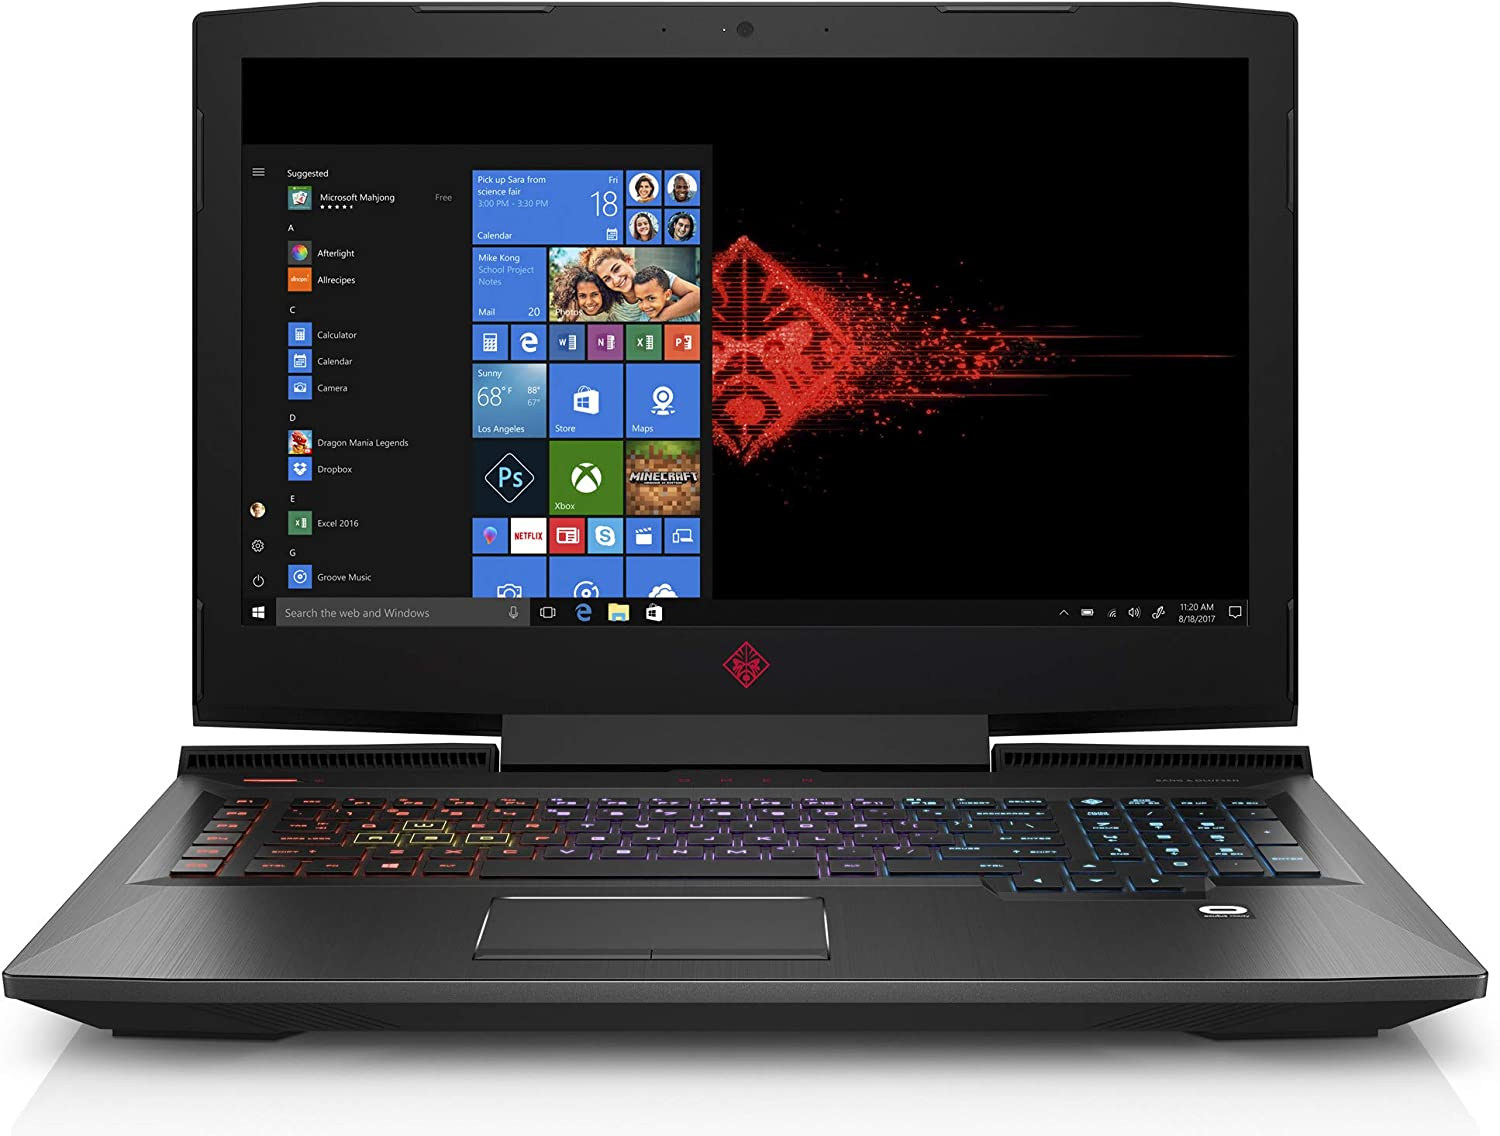 OMEN by HP 17-inch Gaming Laptop, 144Hz FHD IPS G-Sync Display, Intel i7-8750H Processor, NVIDIA GTX 1060 6GB, 16GB RAM, 128GB SSD, 1TB HDD, Win10H, 17-an120nr (Renewed)